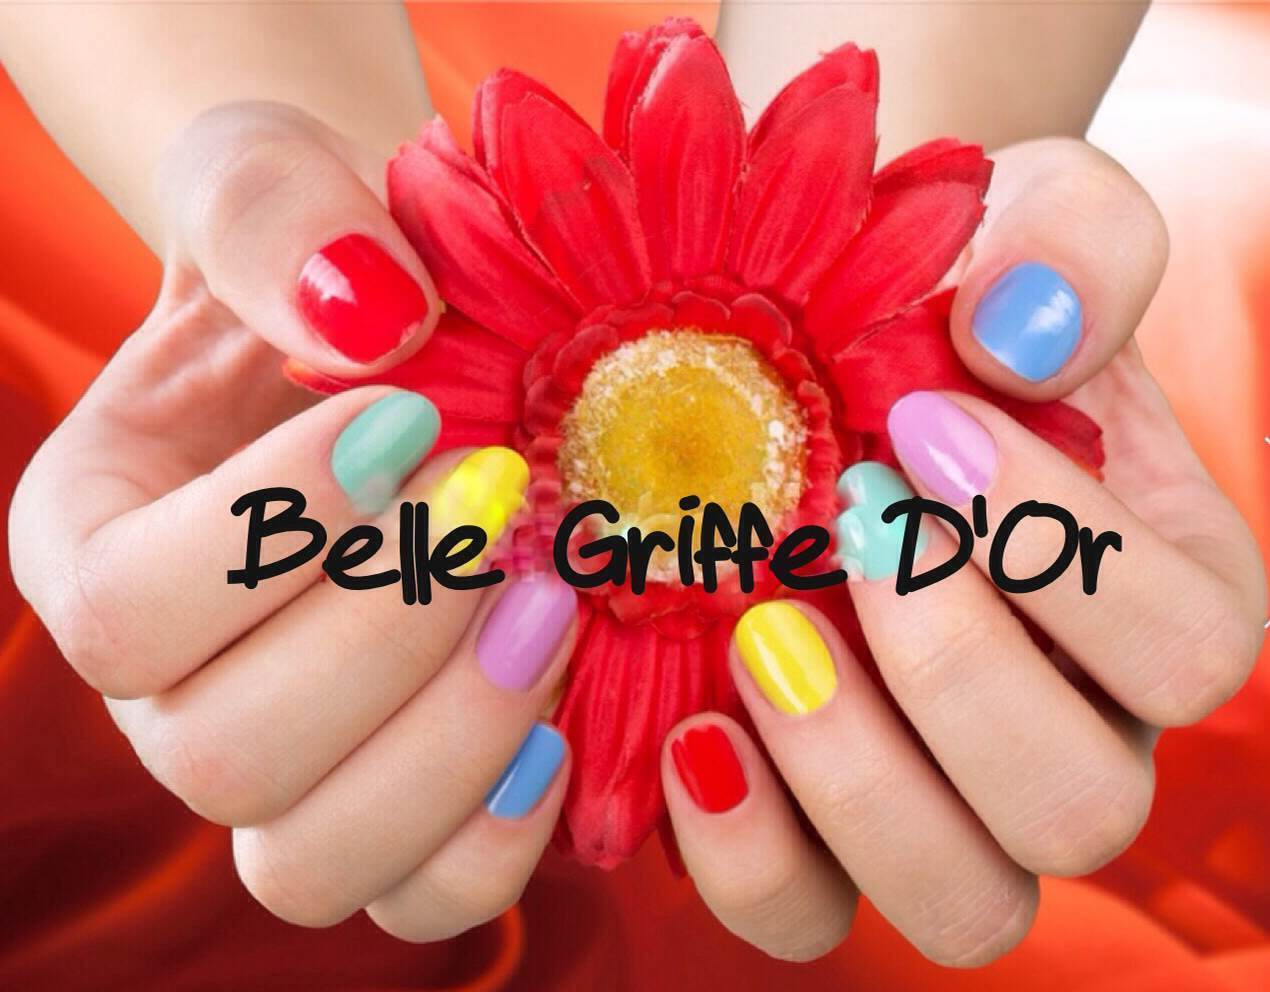 Belle Griffe D'Or